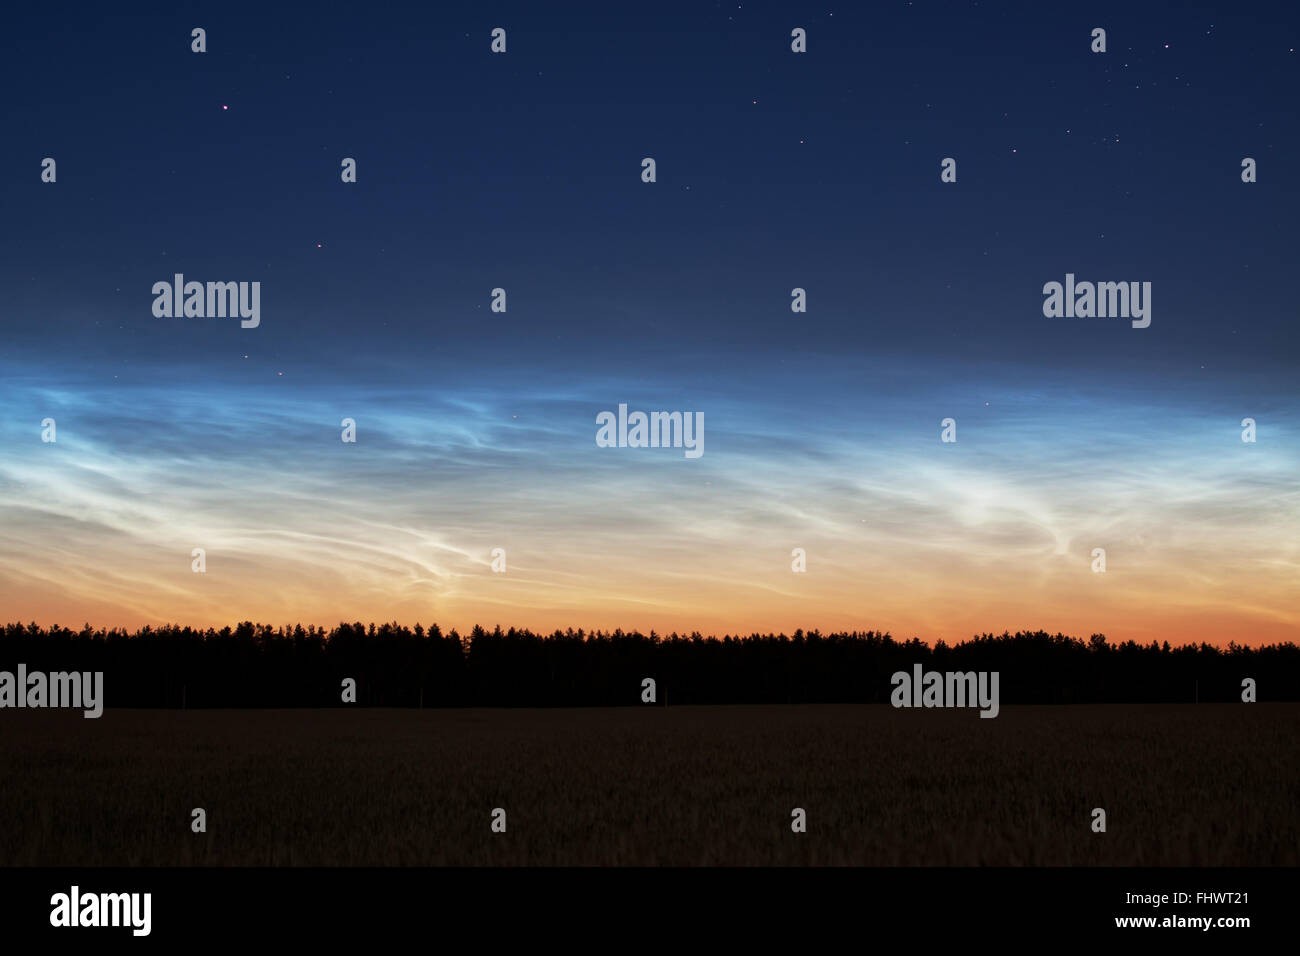 Rare sky phenomenon noctilucent clouds night rural landscape photograph - Stock Image